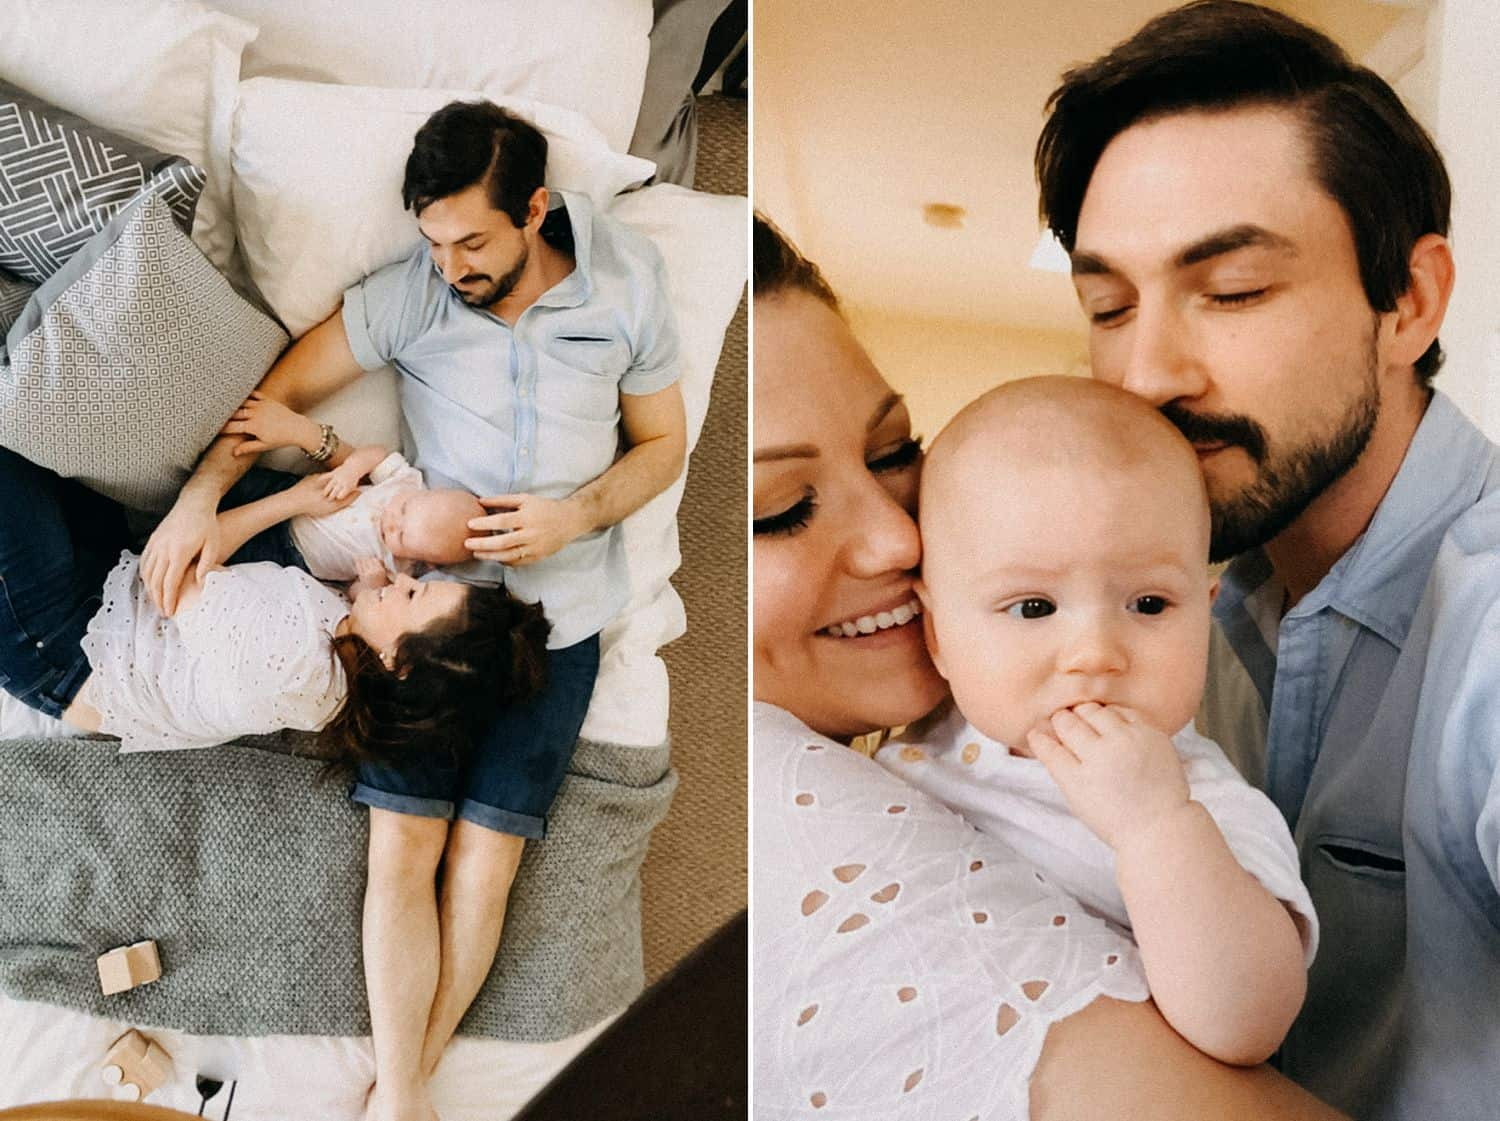 A couple poses with their baby for a series of FaceTime photos shot by Barbara O. Photography